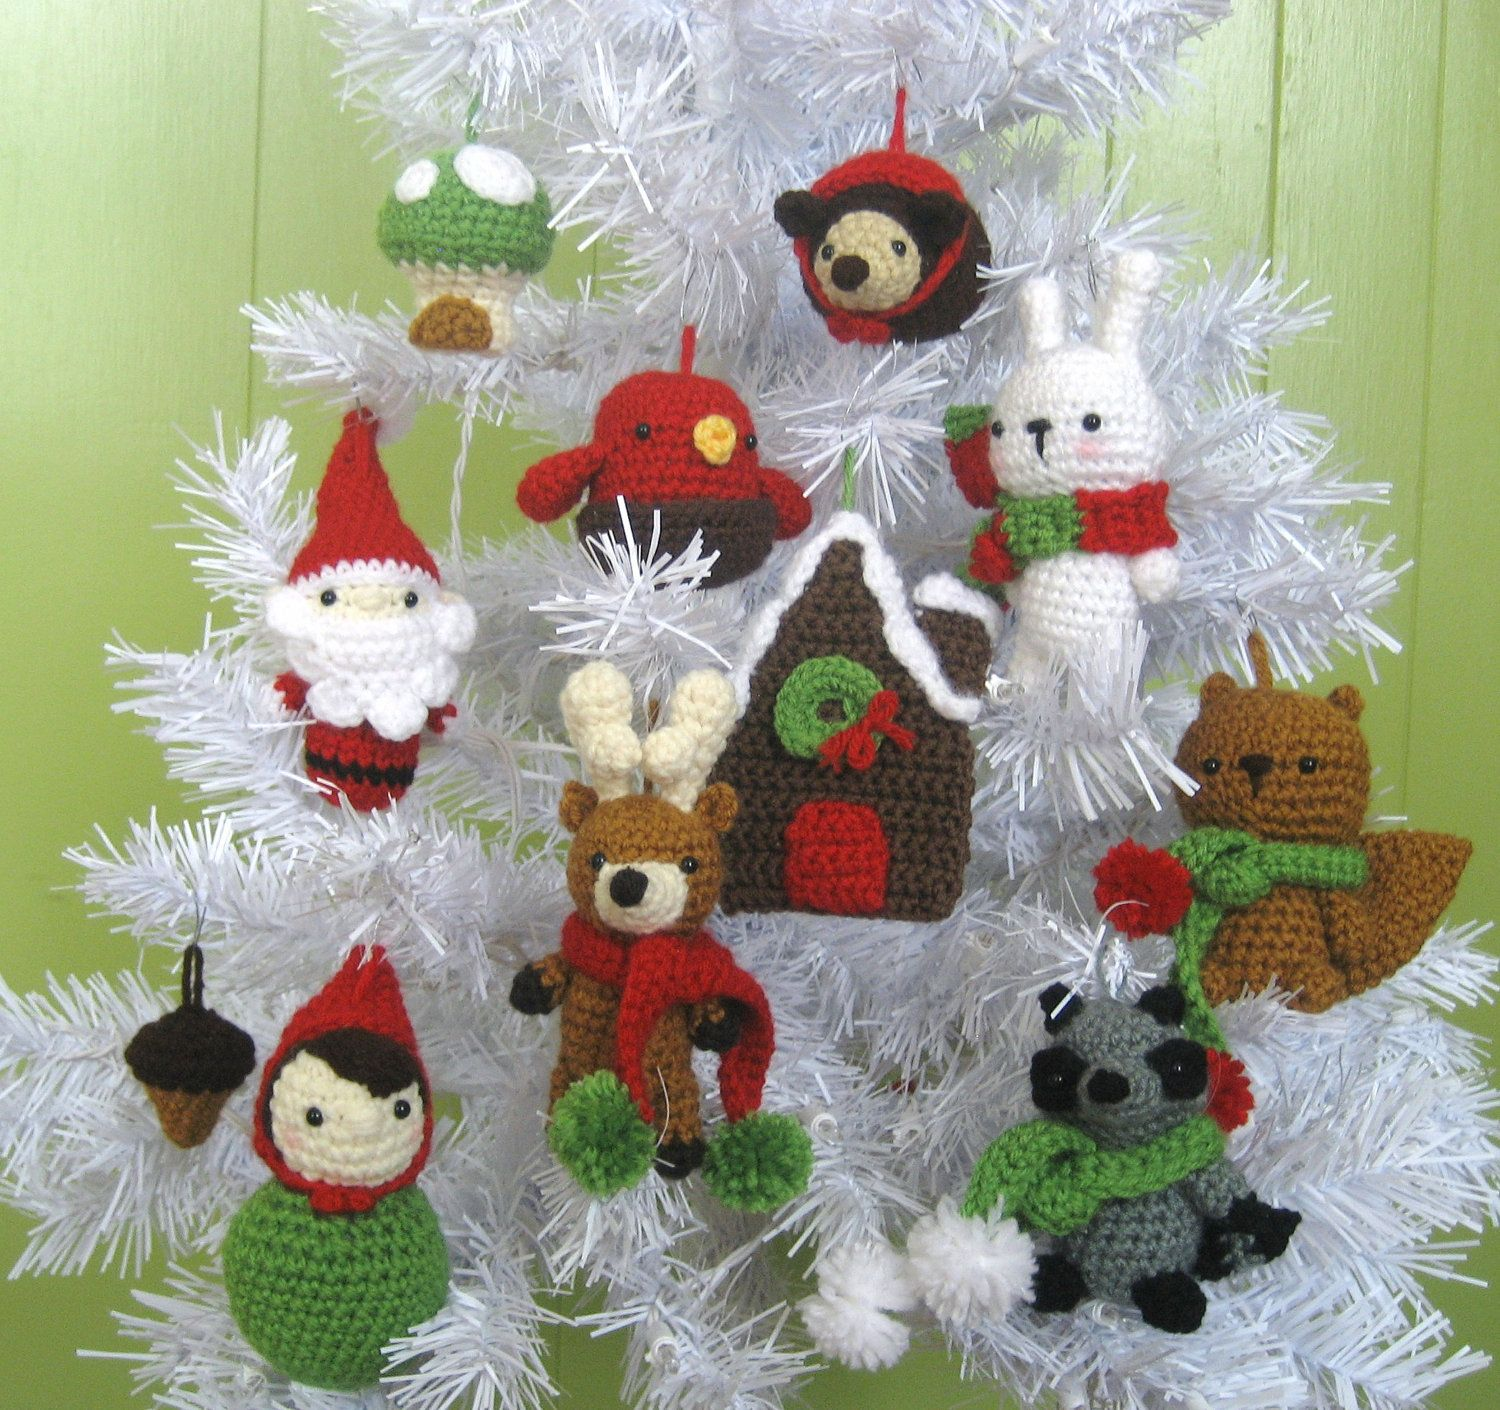 Amigurumi woodland christmas ornament crochet pattern set pdf